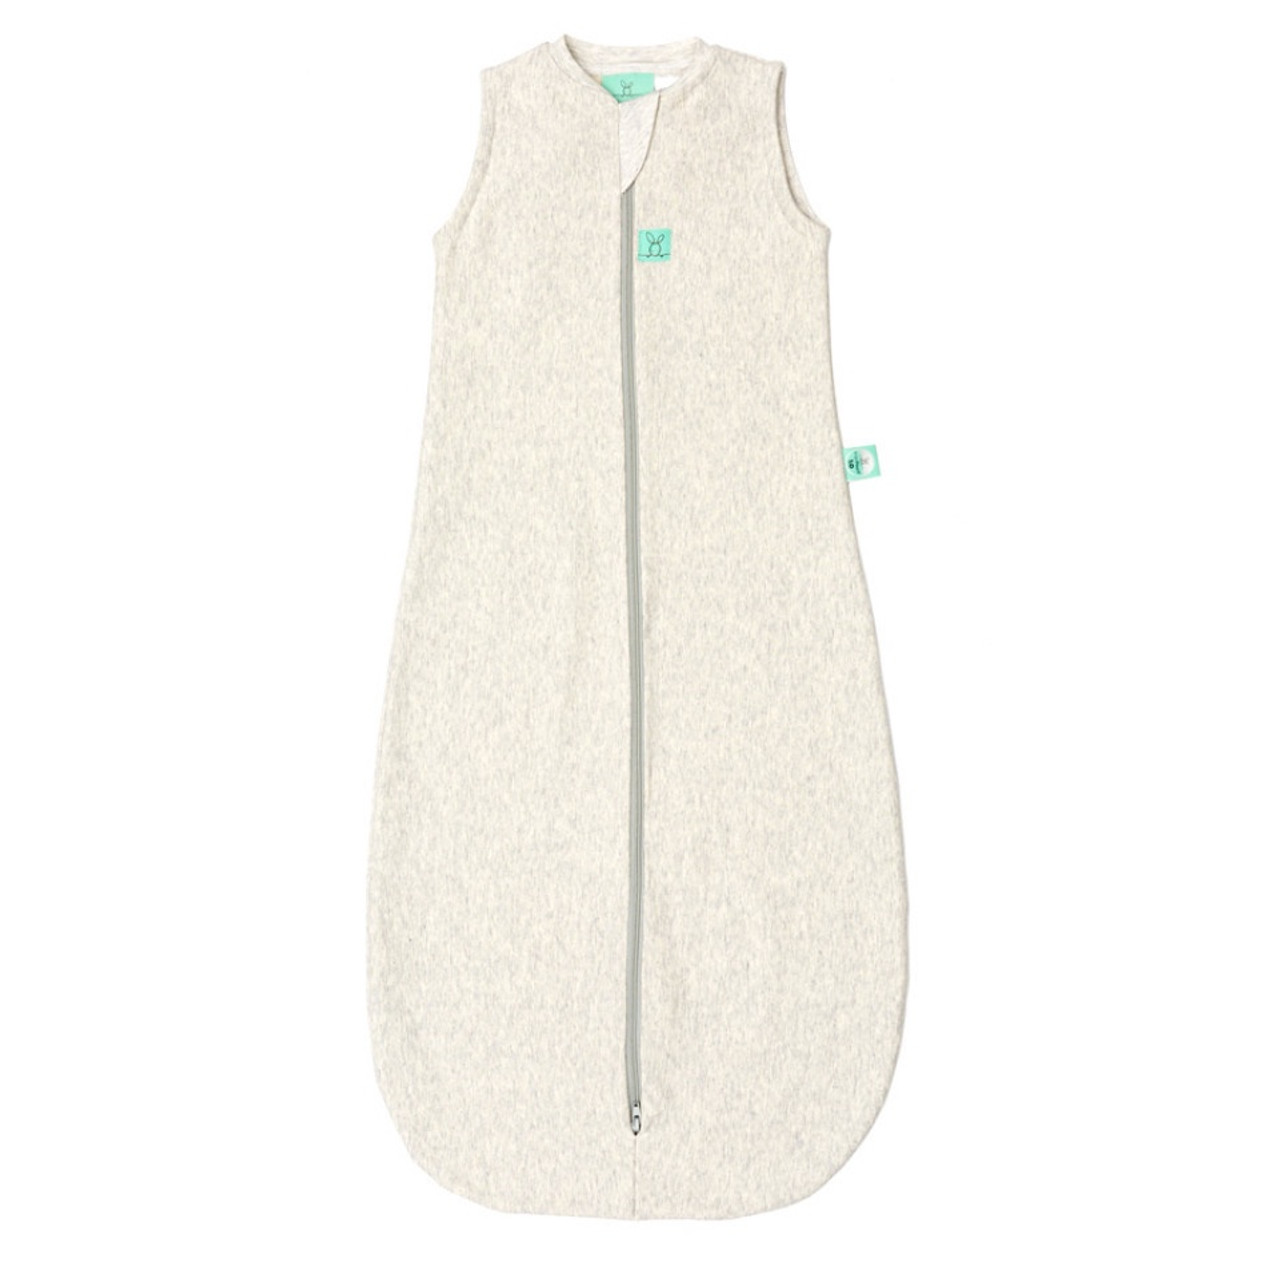 ergoPouch Jersey Sleeping Bag 1.0Tog 3-12 Months GREY MARLE at Baby Barn Discounts Ergopouch Jersey Sleeping Bag is the ideal first sleeping bag for baby.